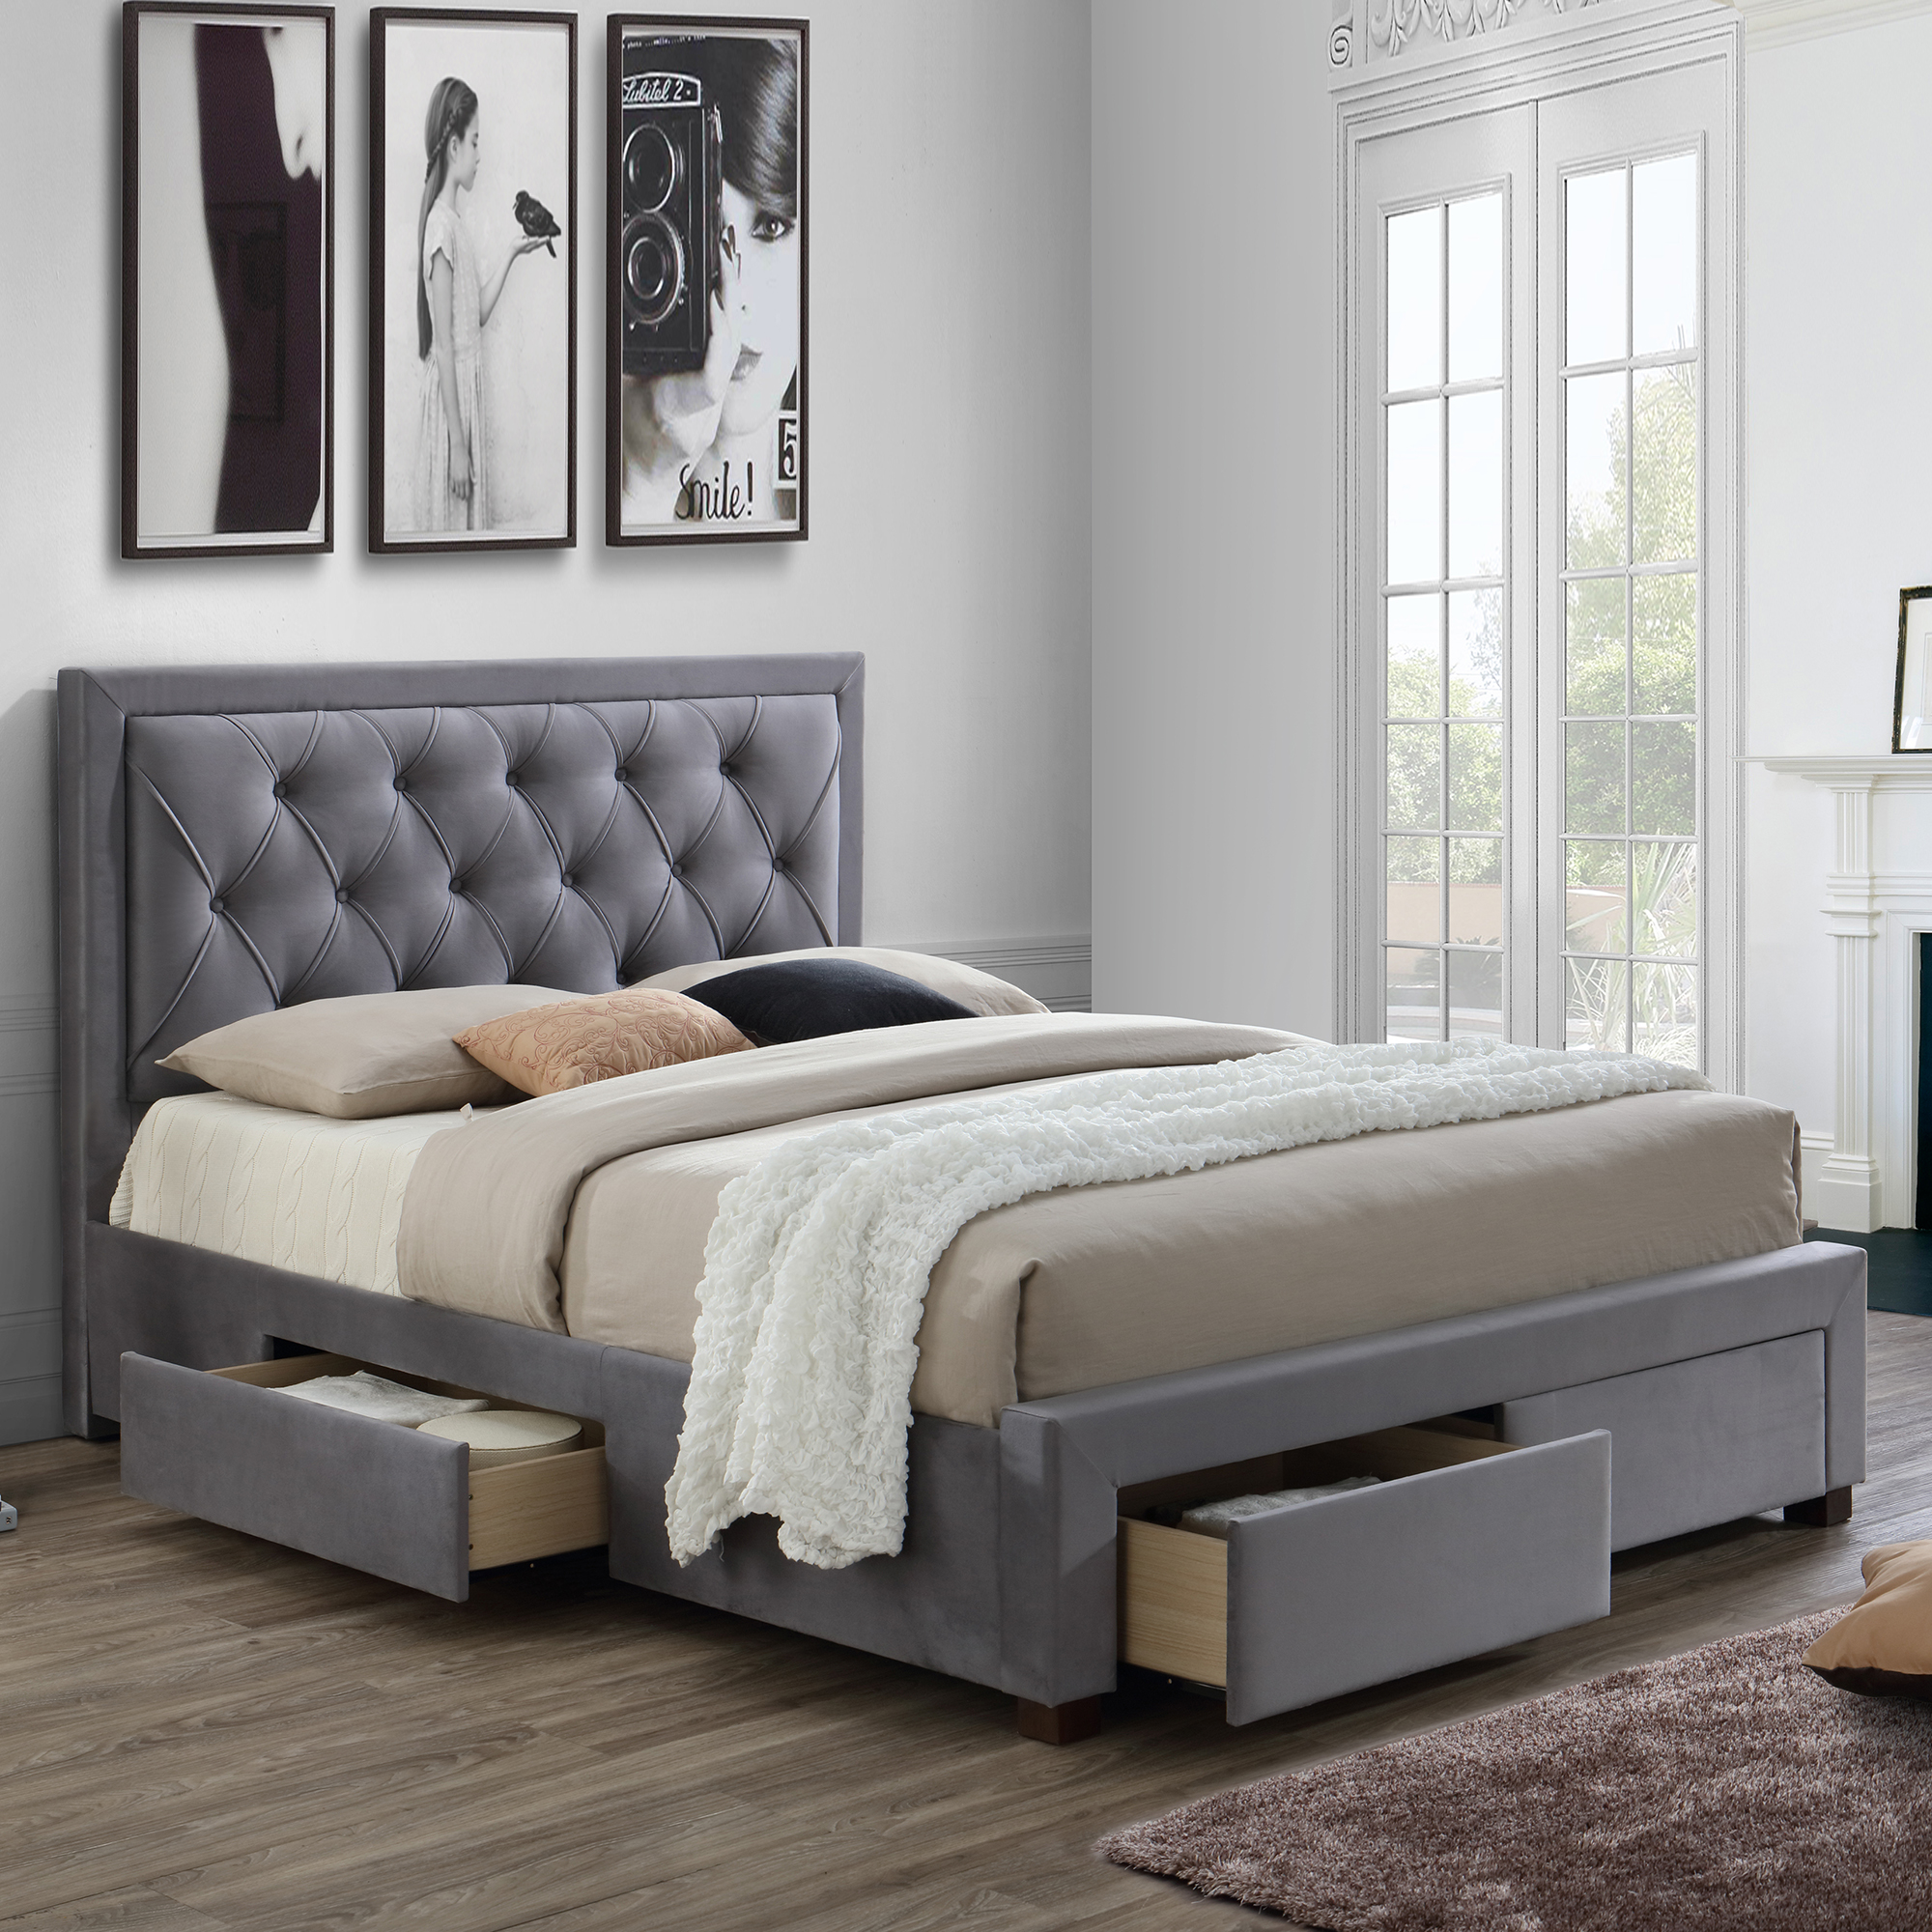 Lumburn - Slatted Storage Bed Frame In Grey Fabric - Bed ...